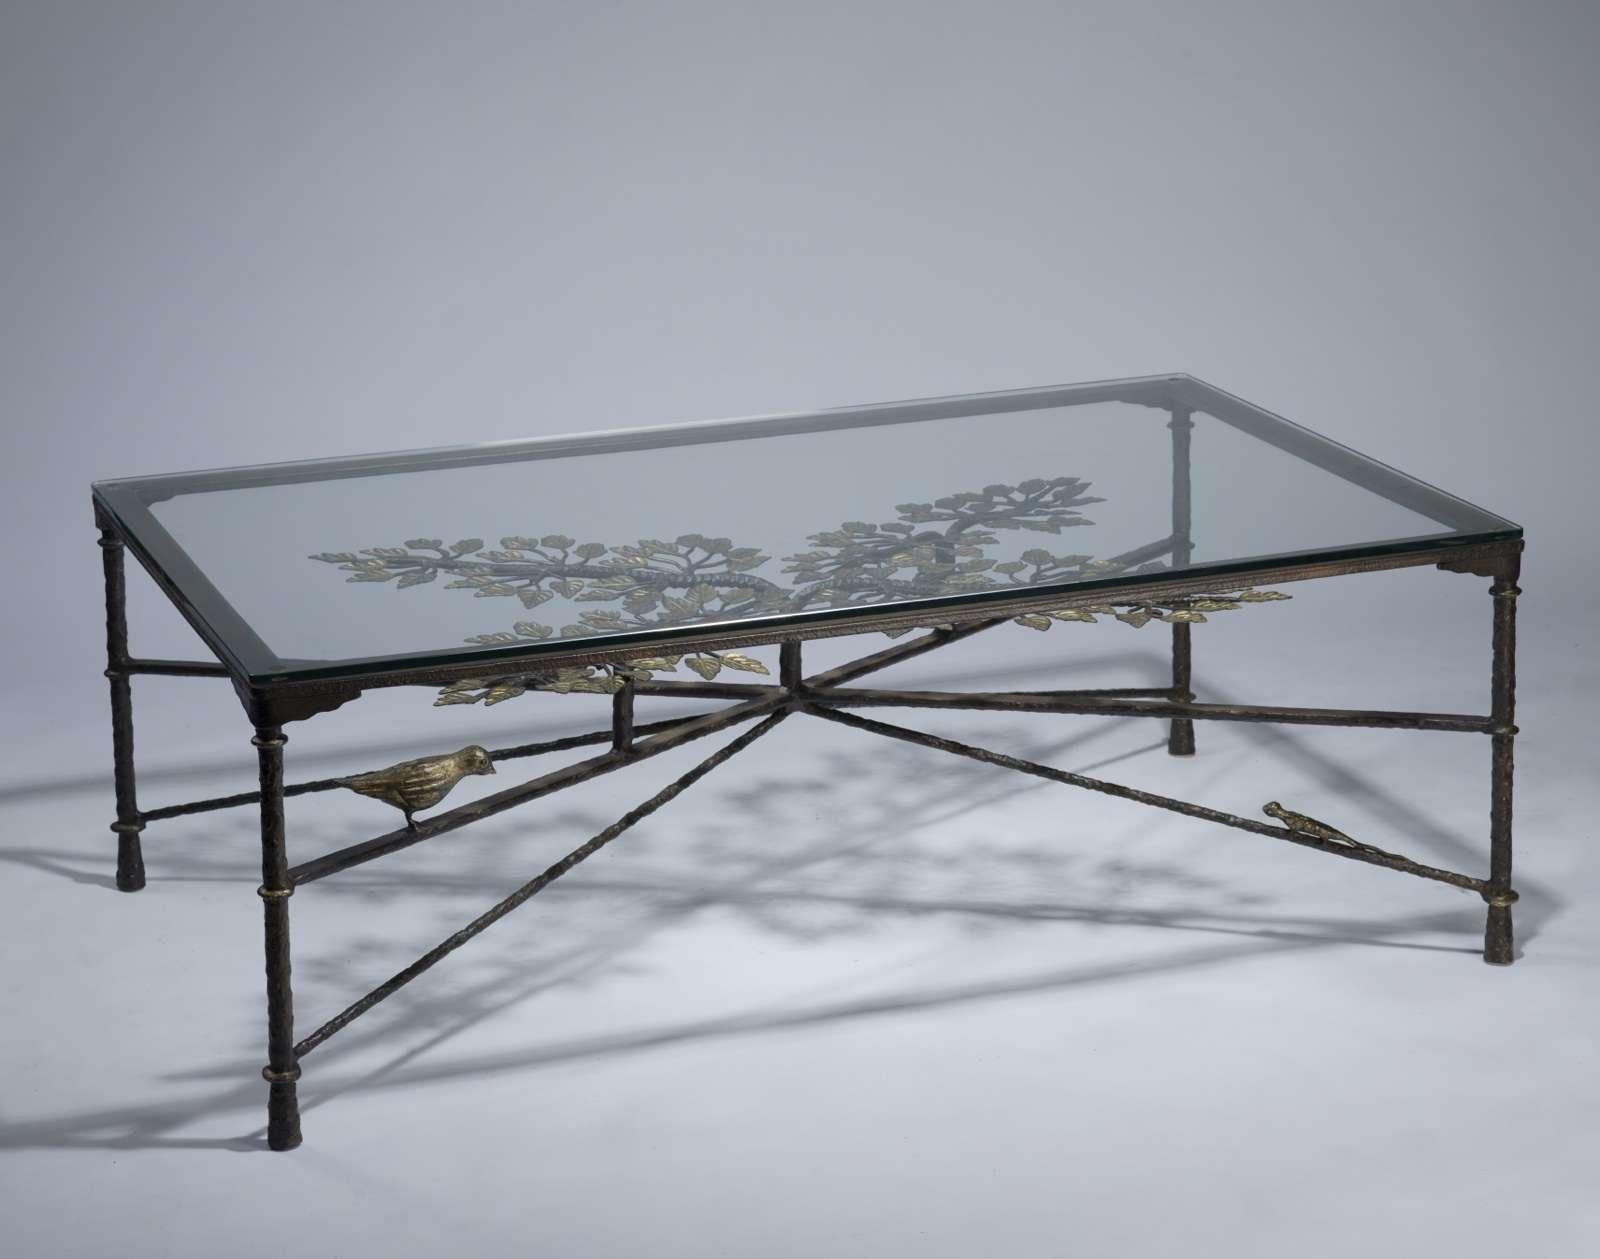 Wrought Iron ' Tree Of Life' Coffee Table In Brown Bronze Regarding Recent Bronze Coffee Table Glass Top (View 20 of 20)